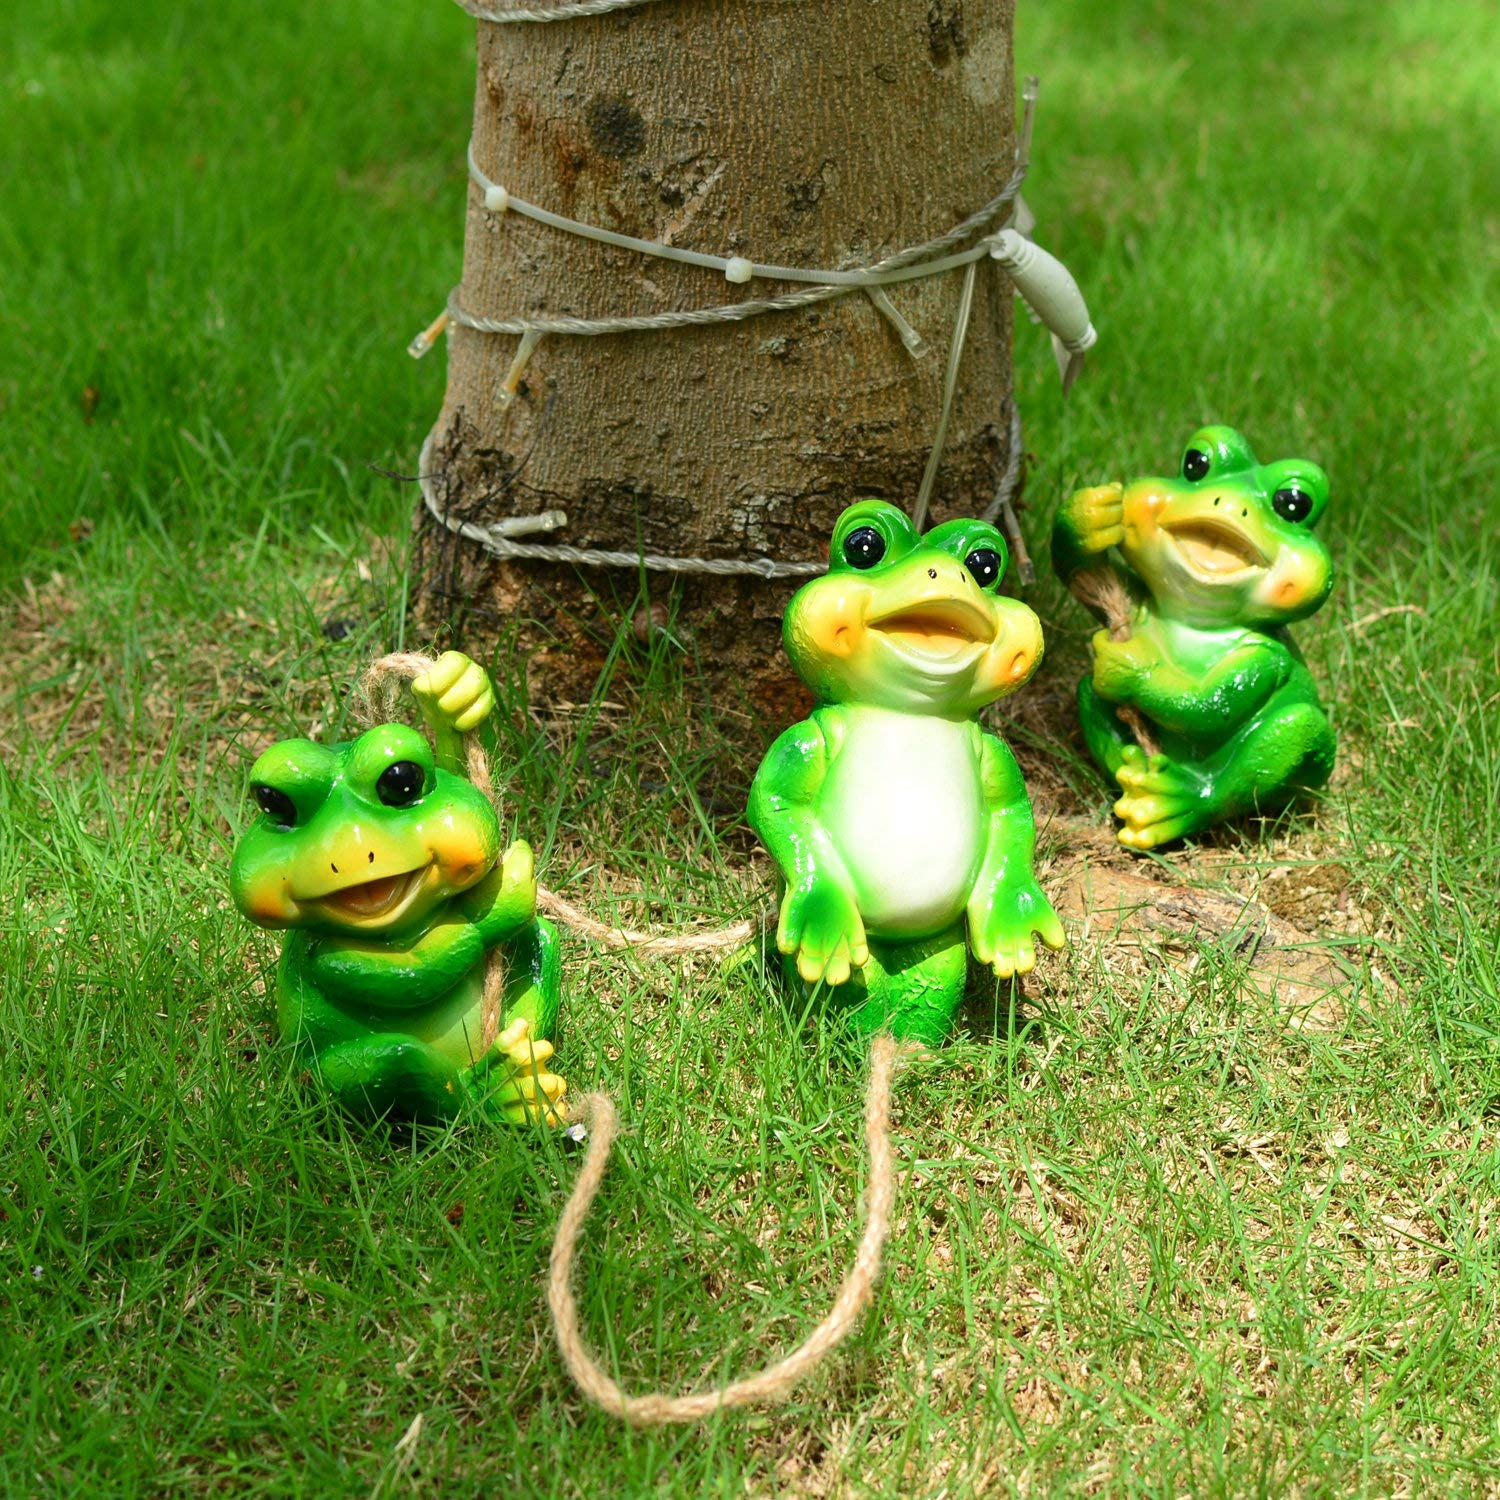 Get Quotations · Frog Garden Decor Statue Outdoor Lawn Ornaments And  Figurines   Frolicking Frogs Hanging Yard Art Sculpture